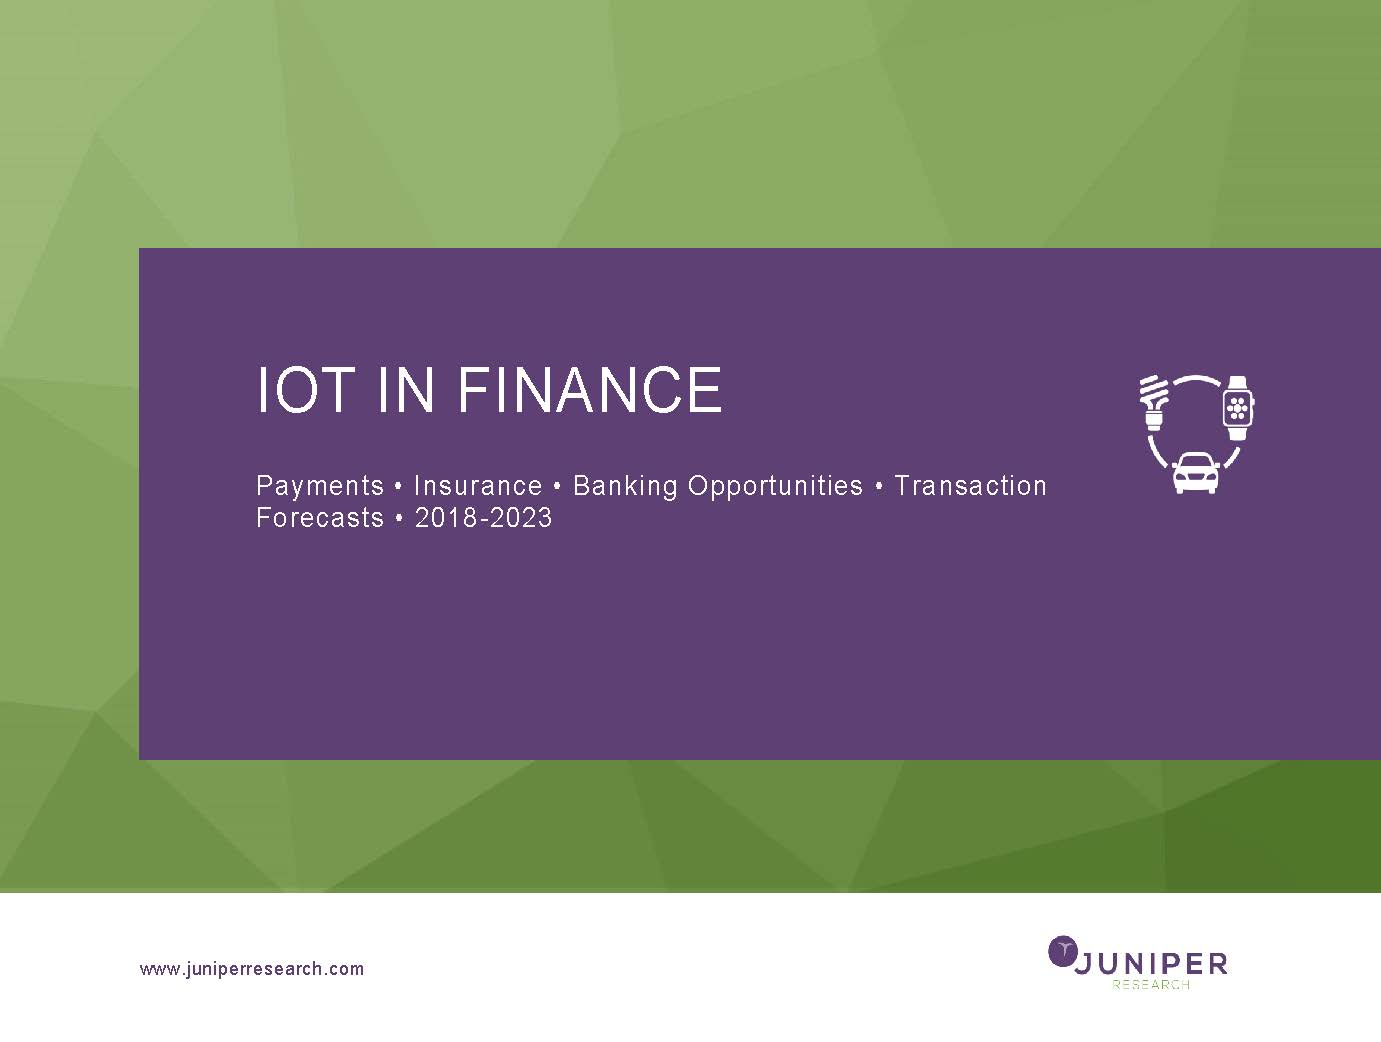 IoT in Finance: Payments, Insurance & Banking Opportunities, Transaction Forecasts 2018-2023 Full Research Suite